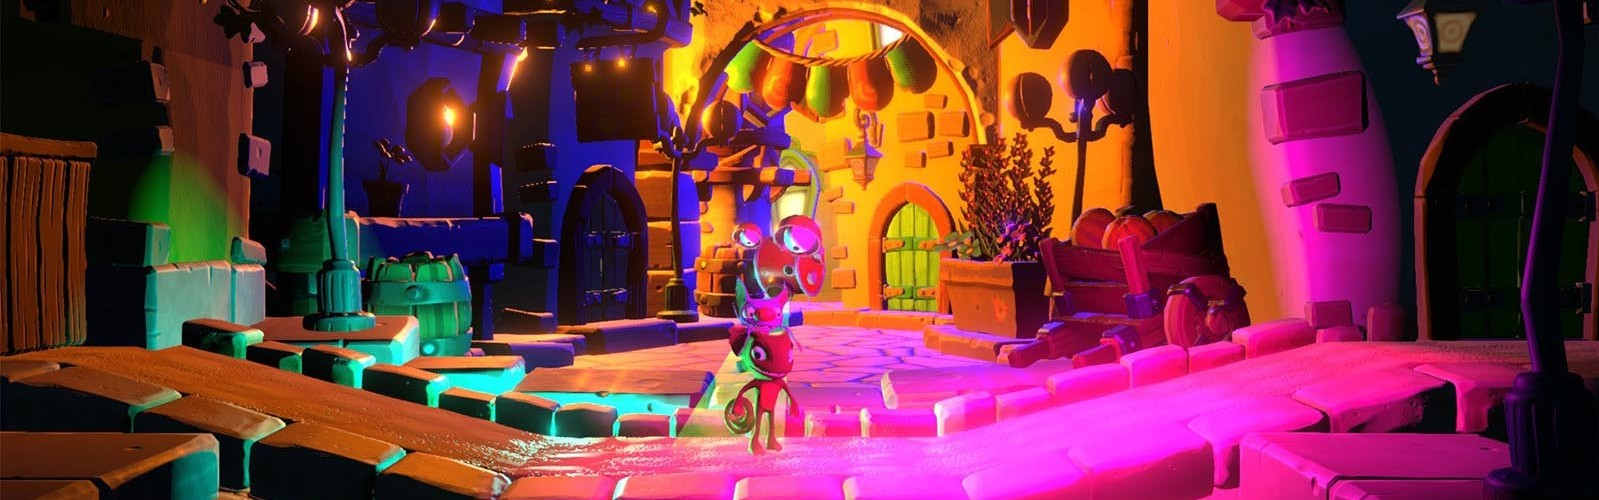 Yooka-Laylee and the Impossible Lair Steam Key GLOBAL